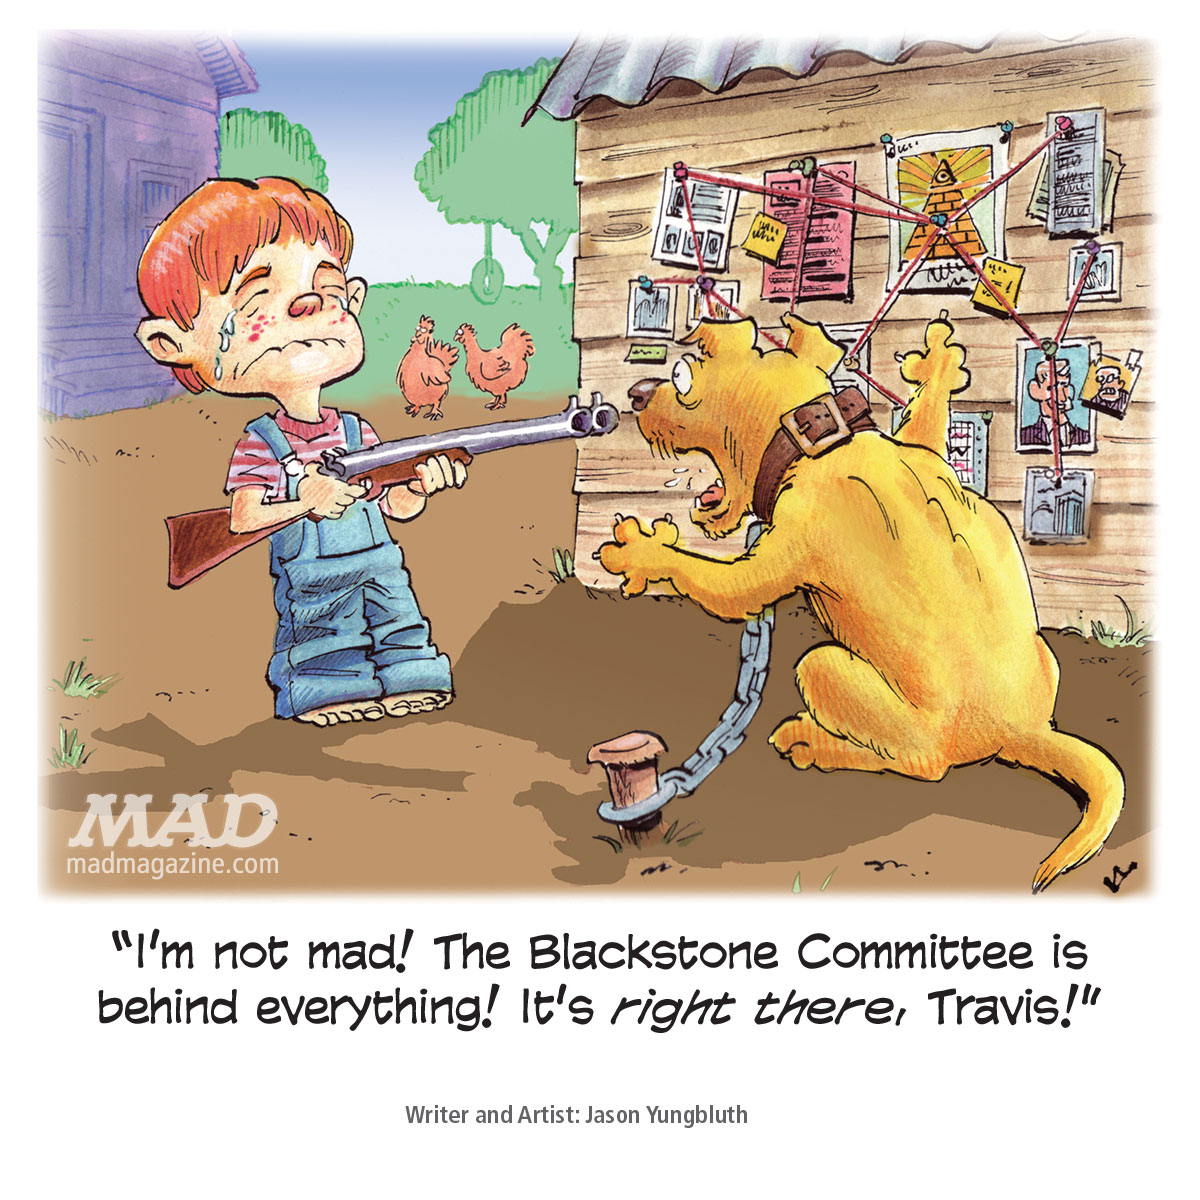 Mad magazine jason yungbluth blackstone committee conspiracy single panel cartoon fundalini pages